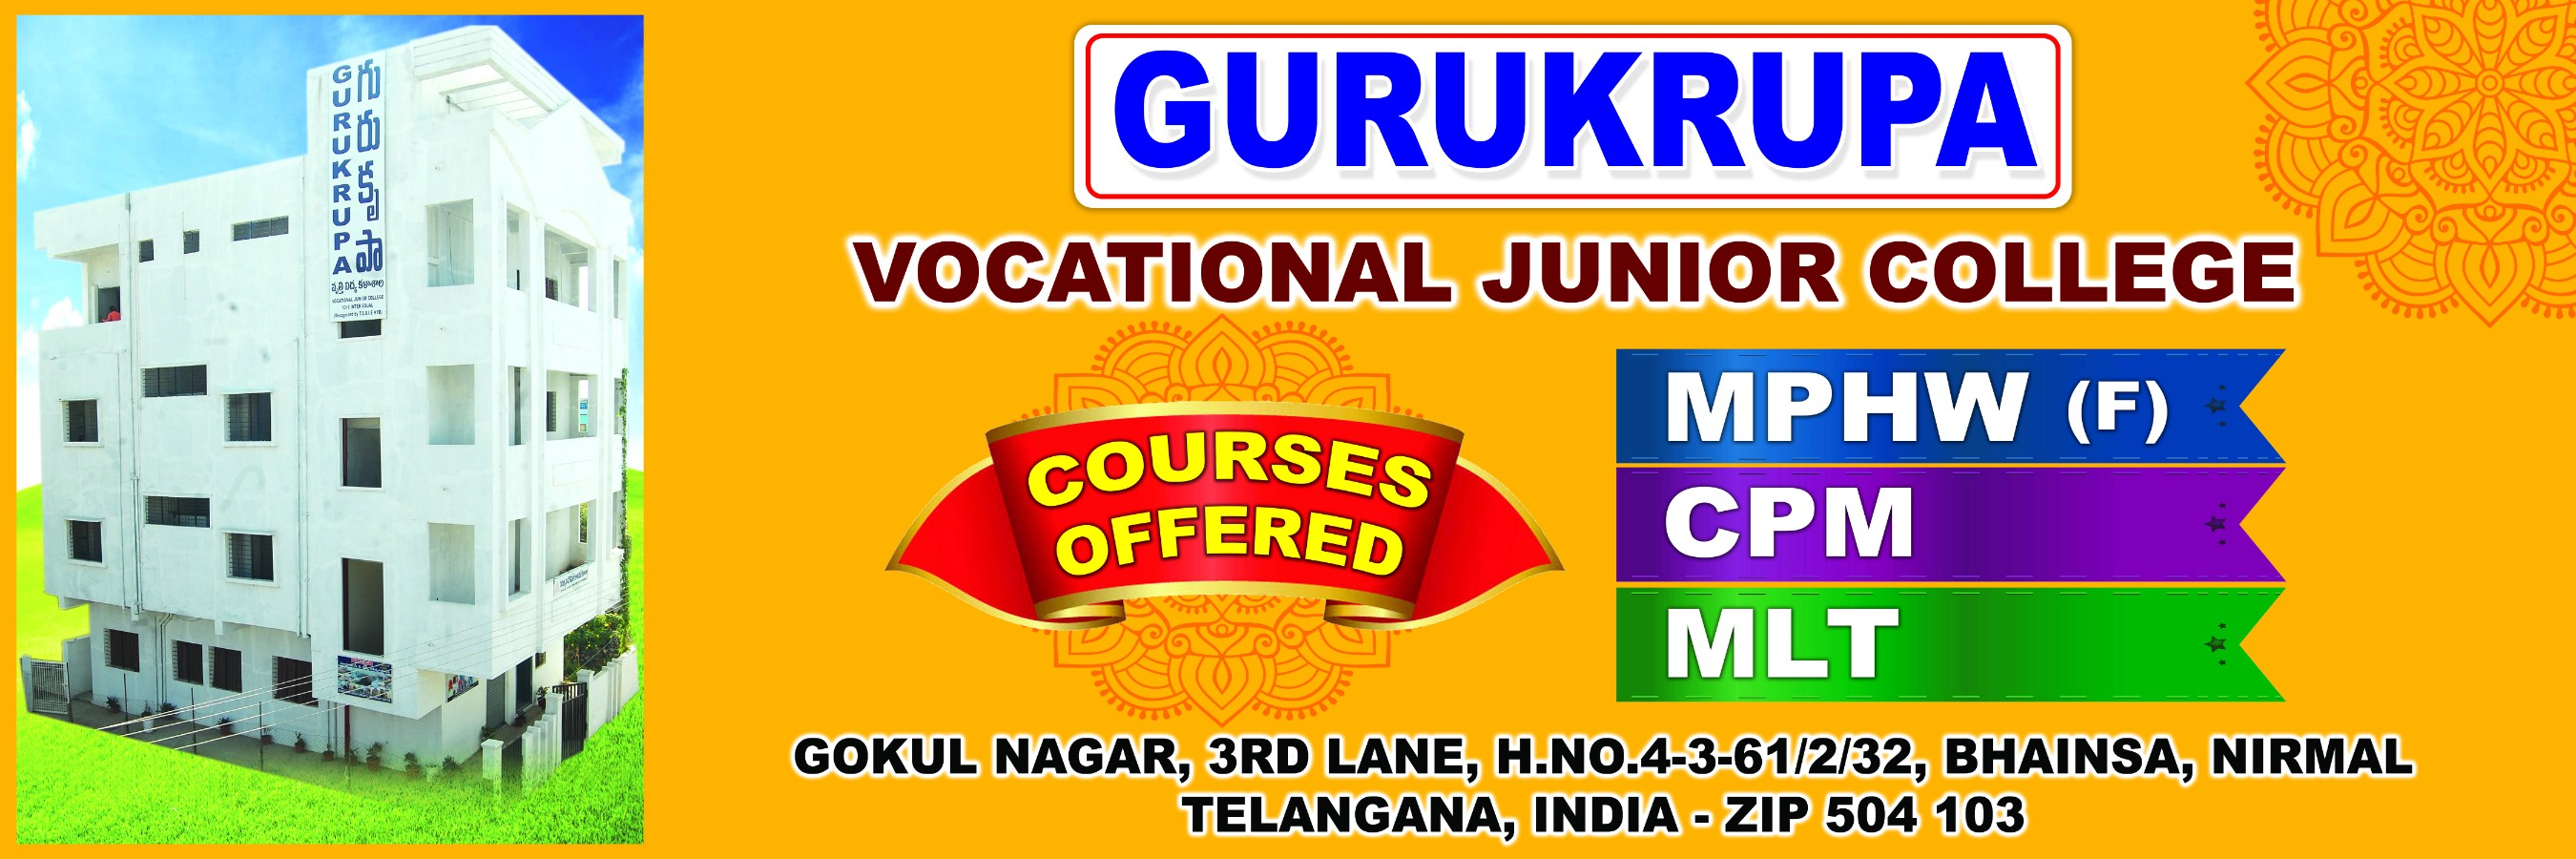 Gurukrupa Vocational Jr College